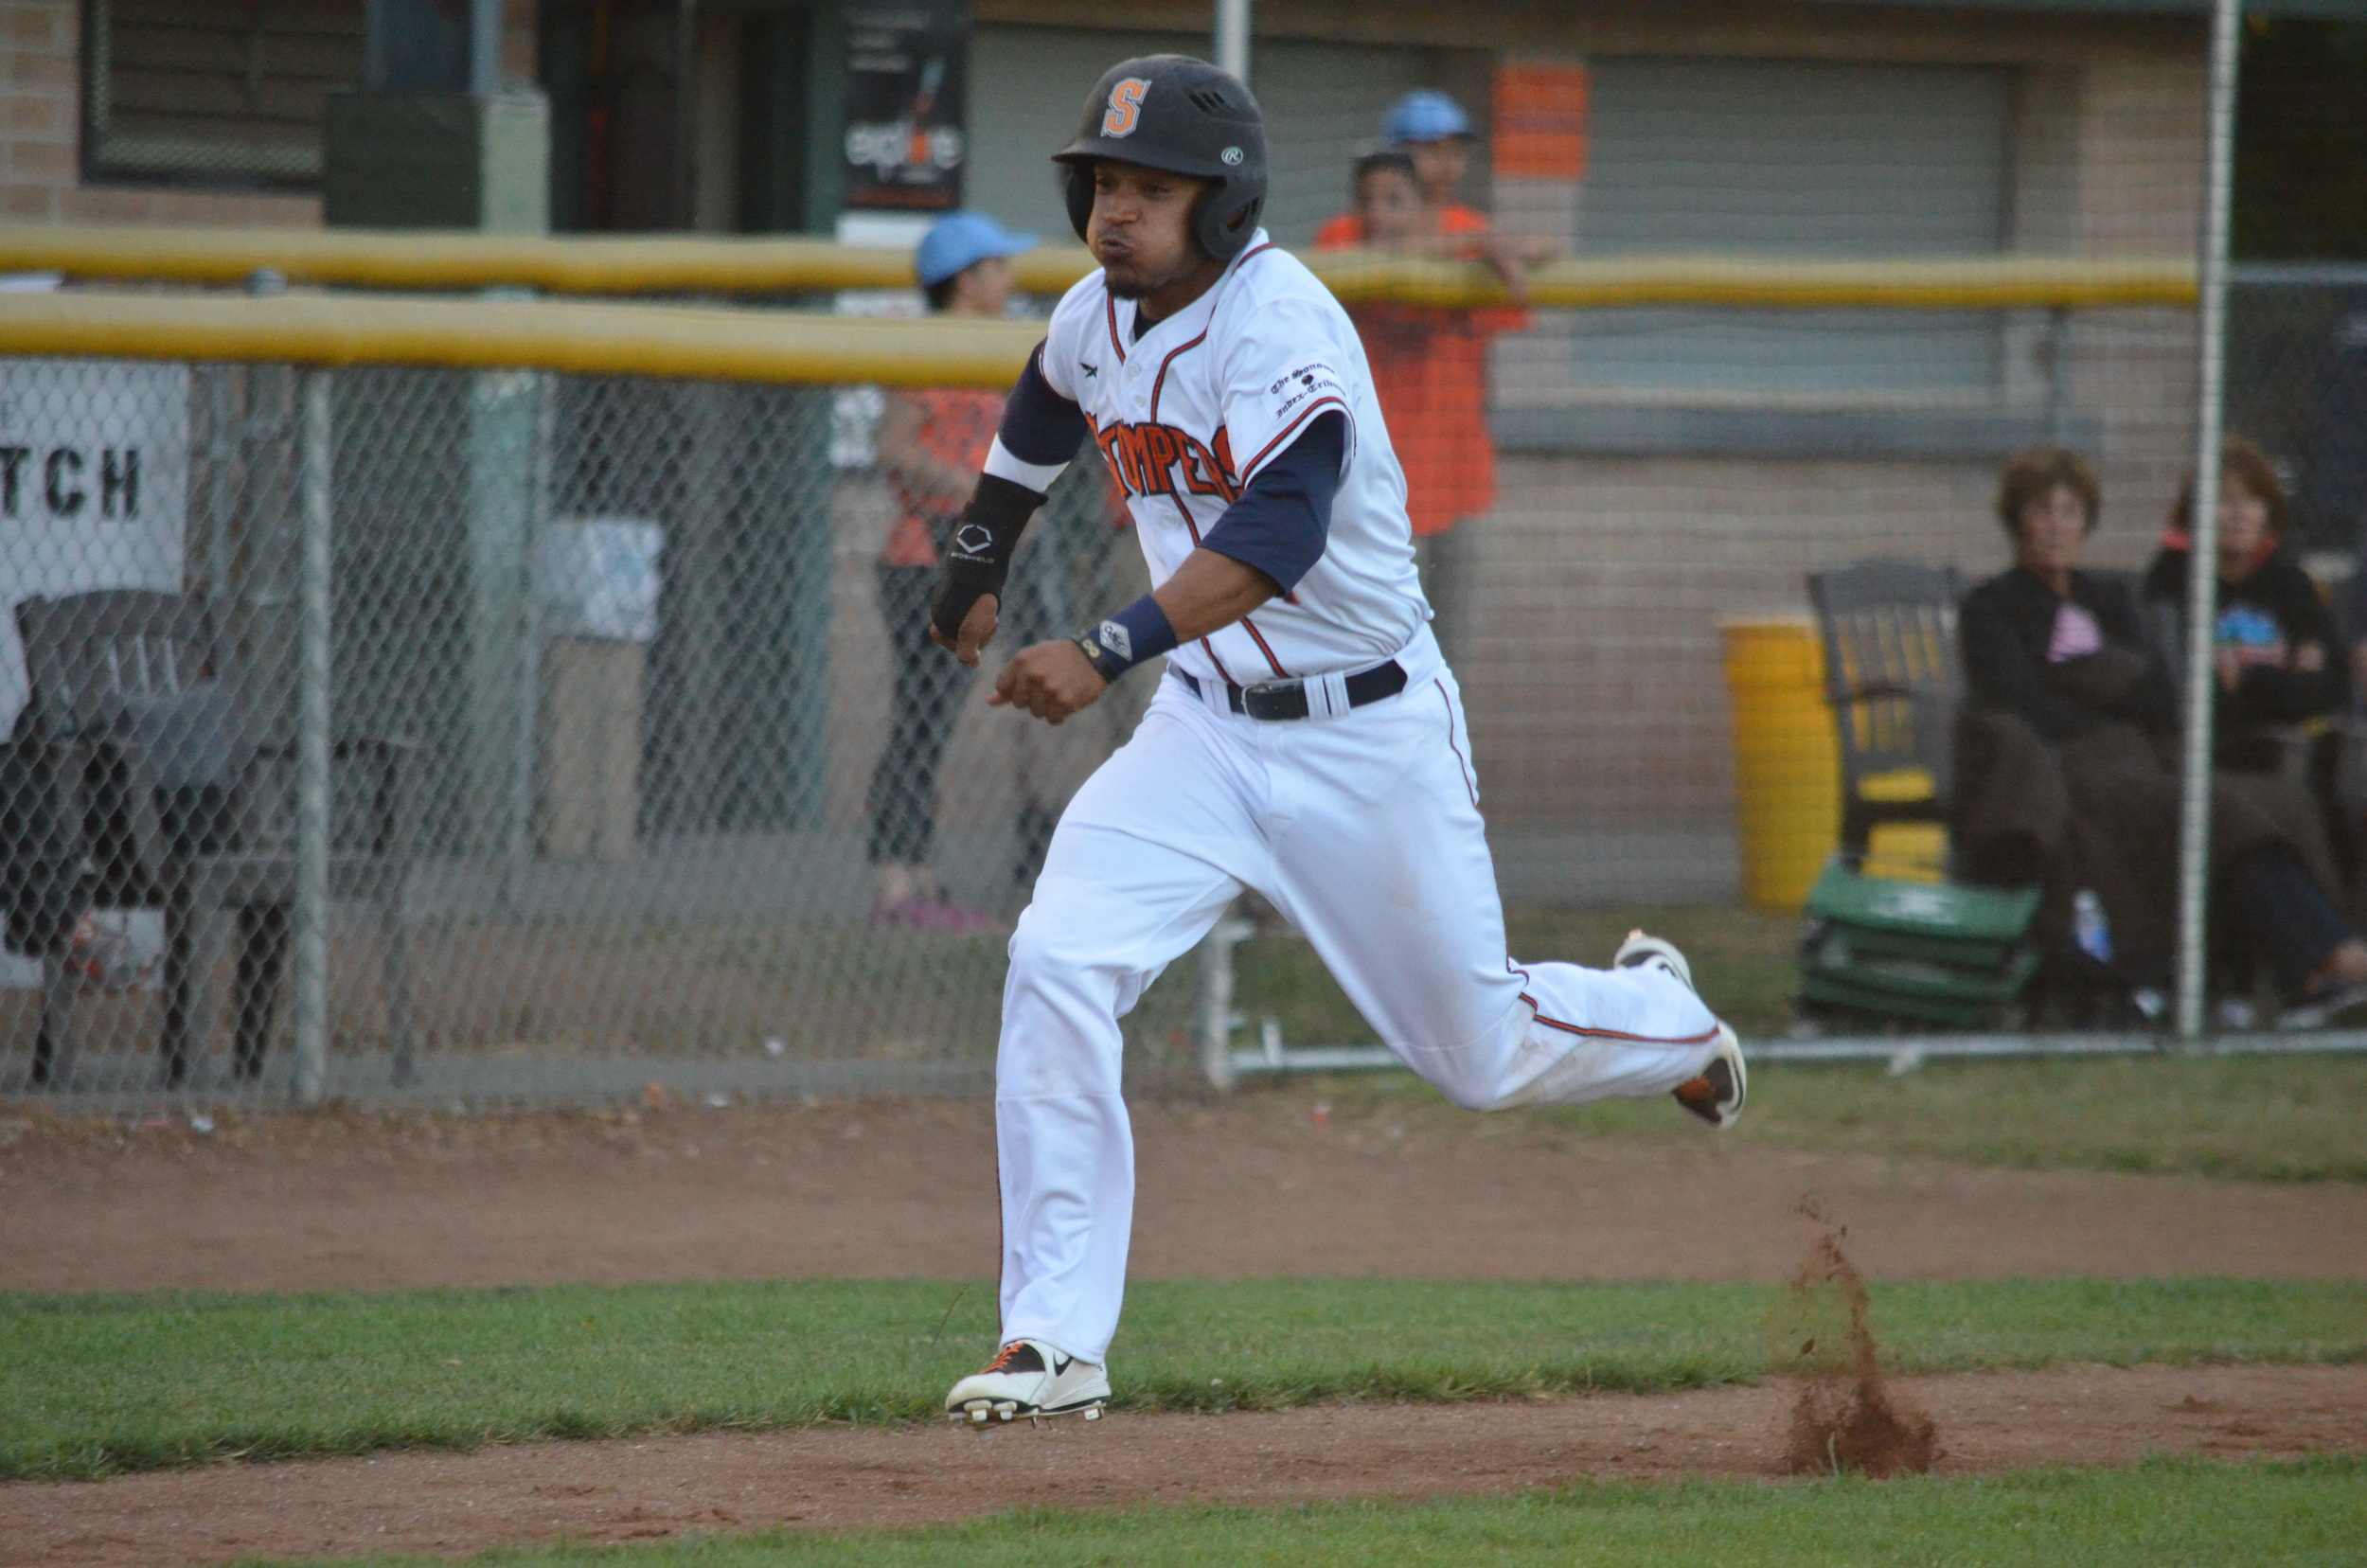 Matt Hibbert is heading back to Sonoma for his third season with the team. The popular center fielder is a two-time Defensive Player of the Year winner in the Pacific Association.   James Toy III/Sonoma Stompers